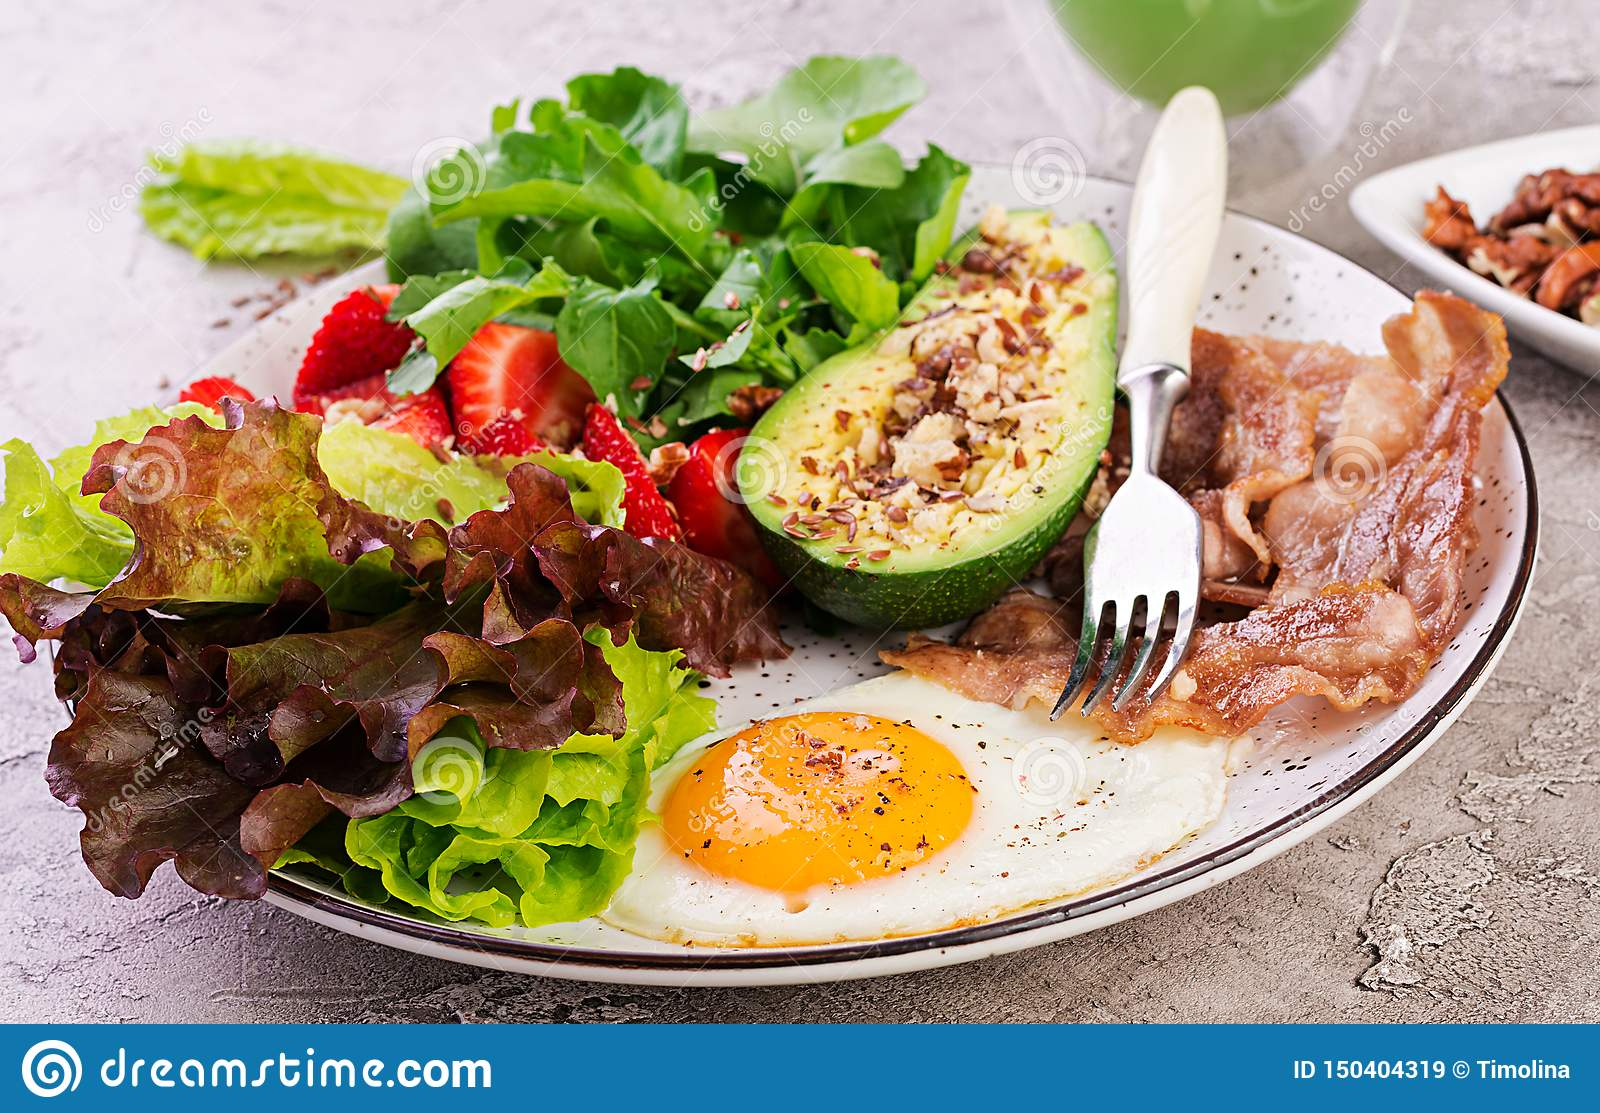 Plate with a keto diet food. Fried egg, bacon, avocado, arugula and strawberries.